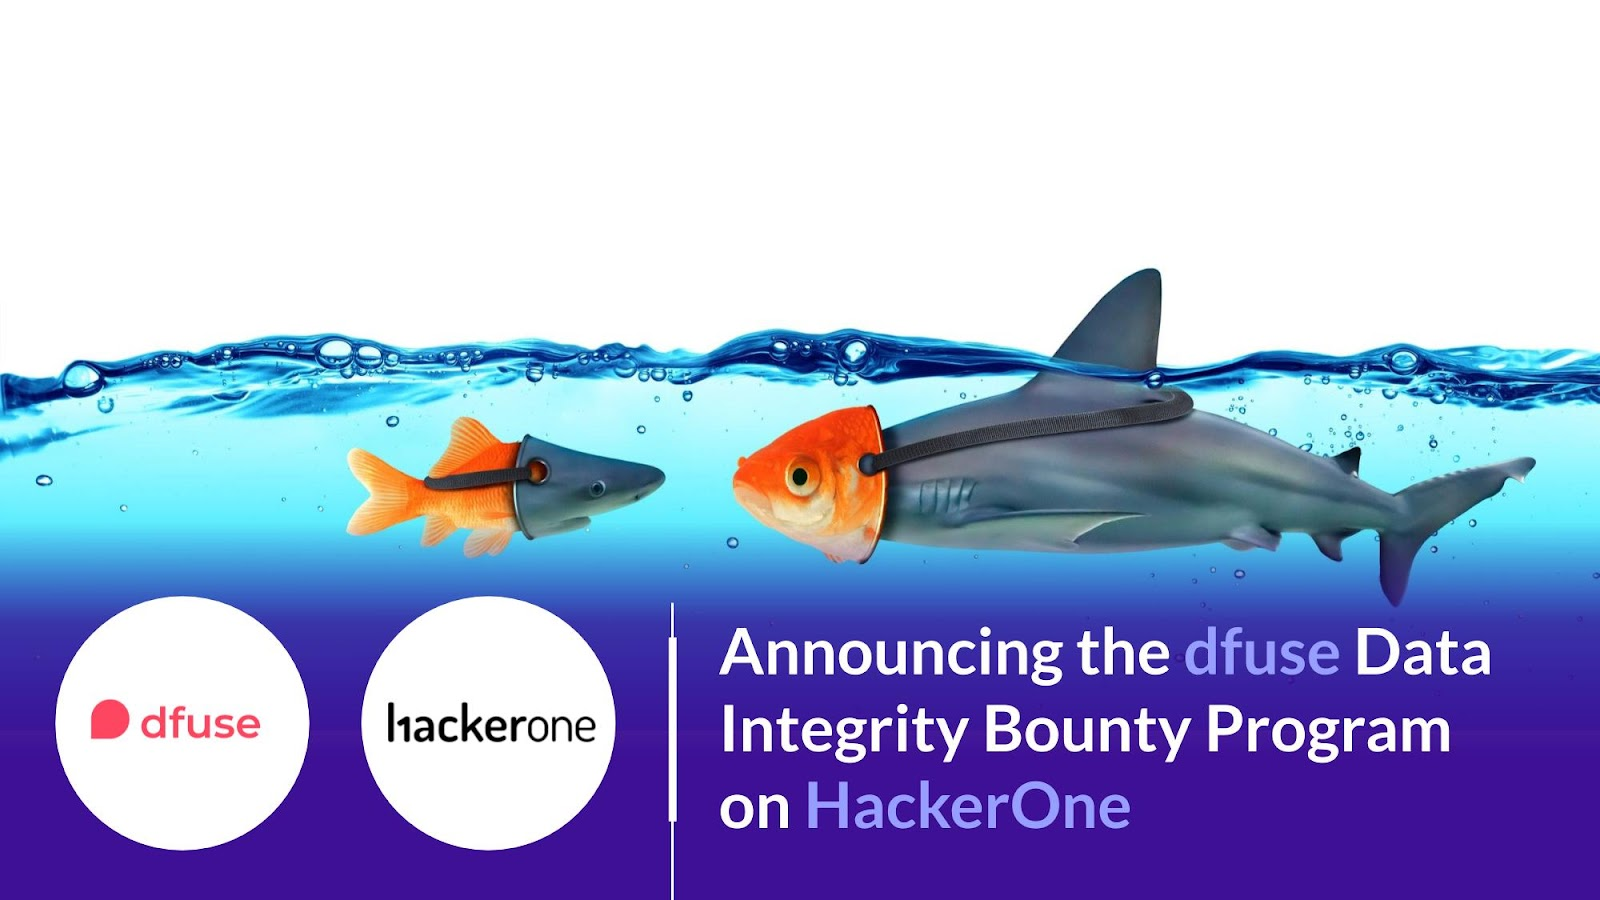 Announcing the dfuse Data Integrity Bounty Program on